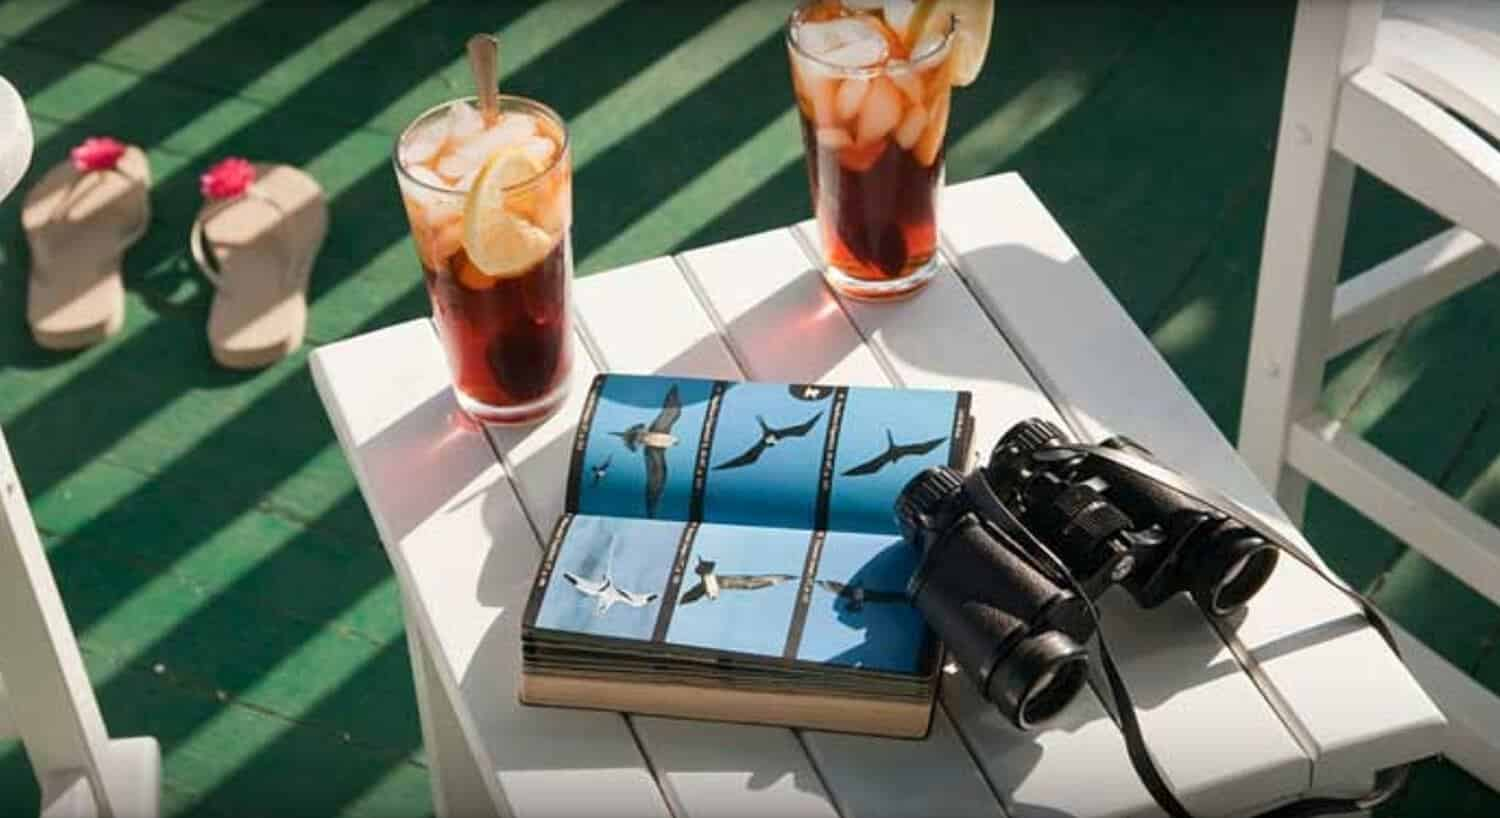 Two glasses of iced tea, a bird book and binoculars ona table between two patio chairs.